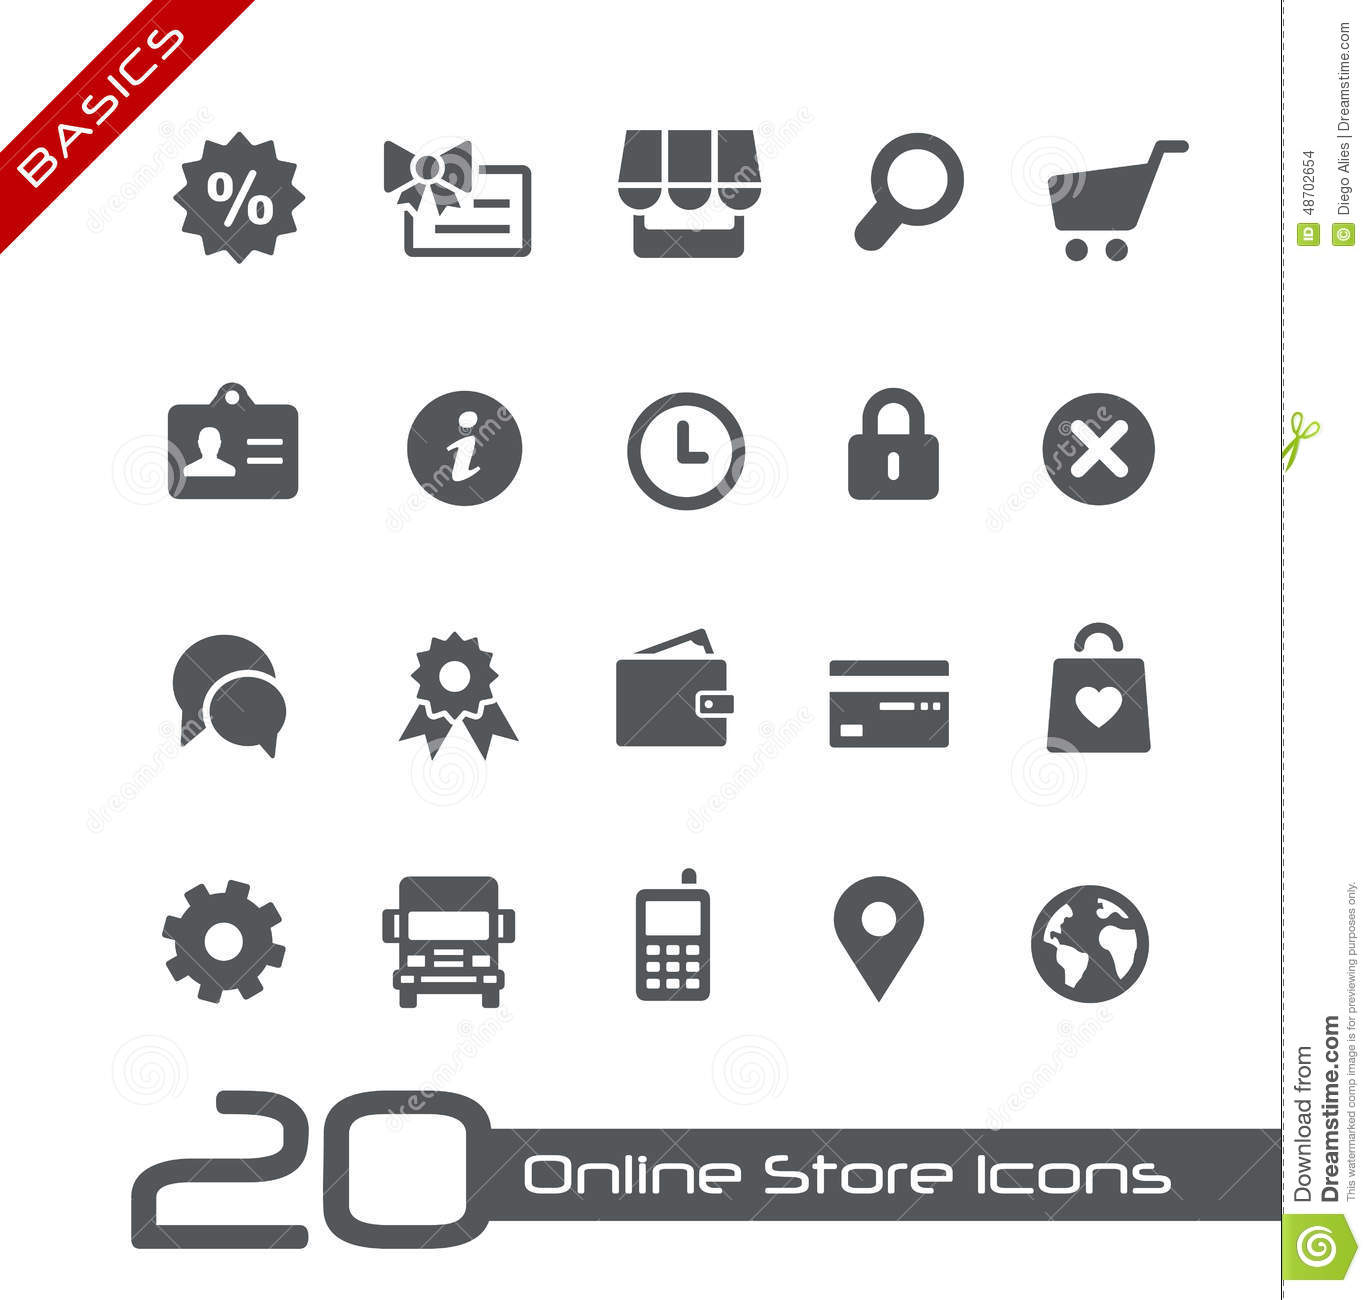 Online store icons basics stock vector illustration for Mobili store online